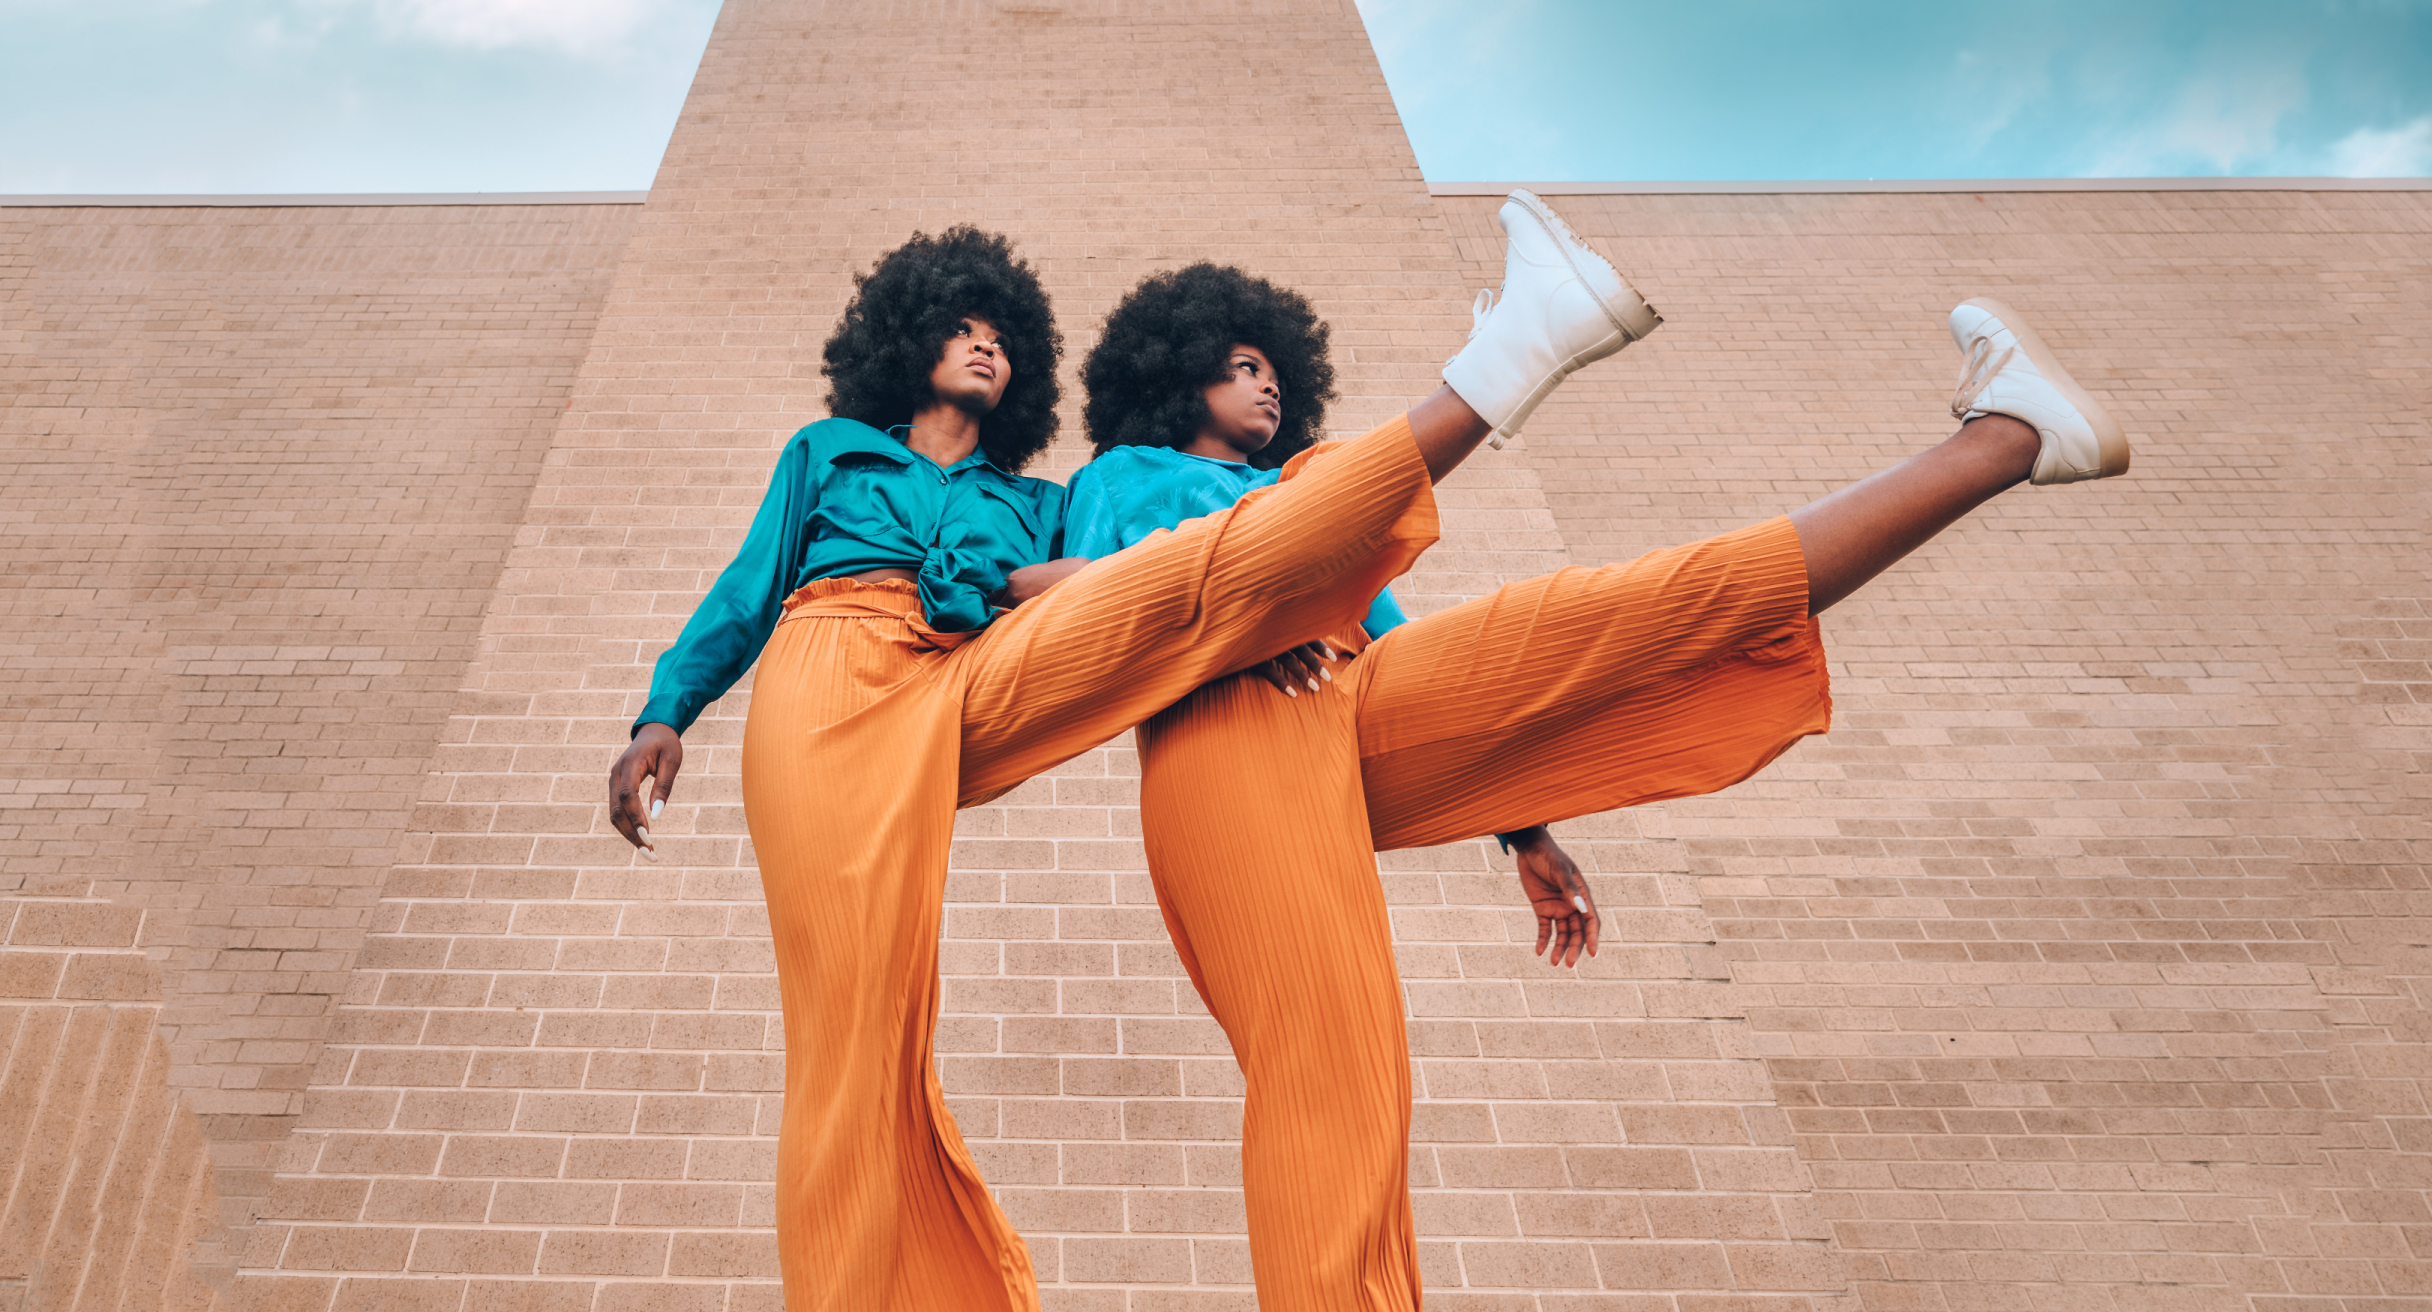 Two women in matching outfits kicking their legs up